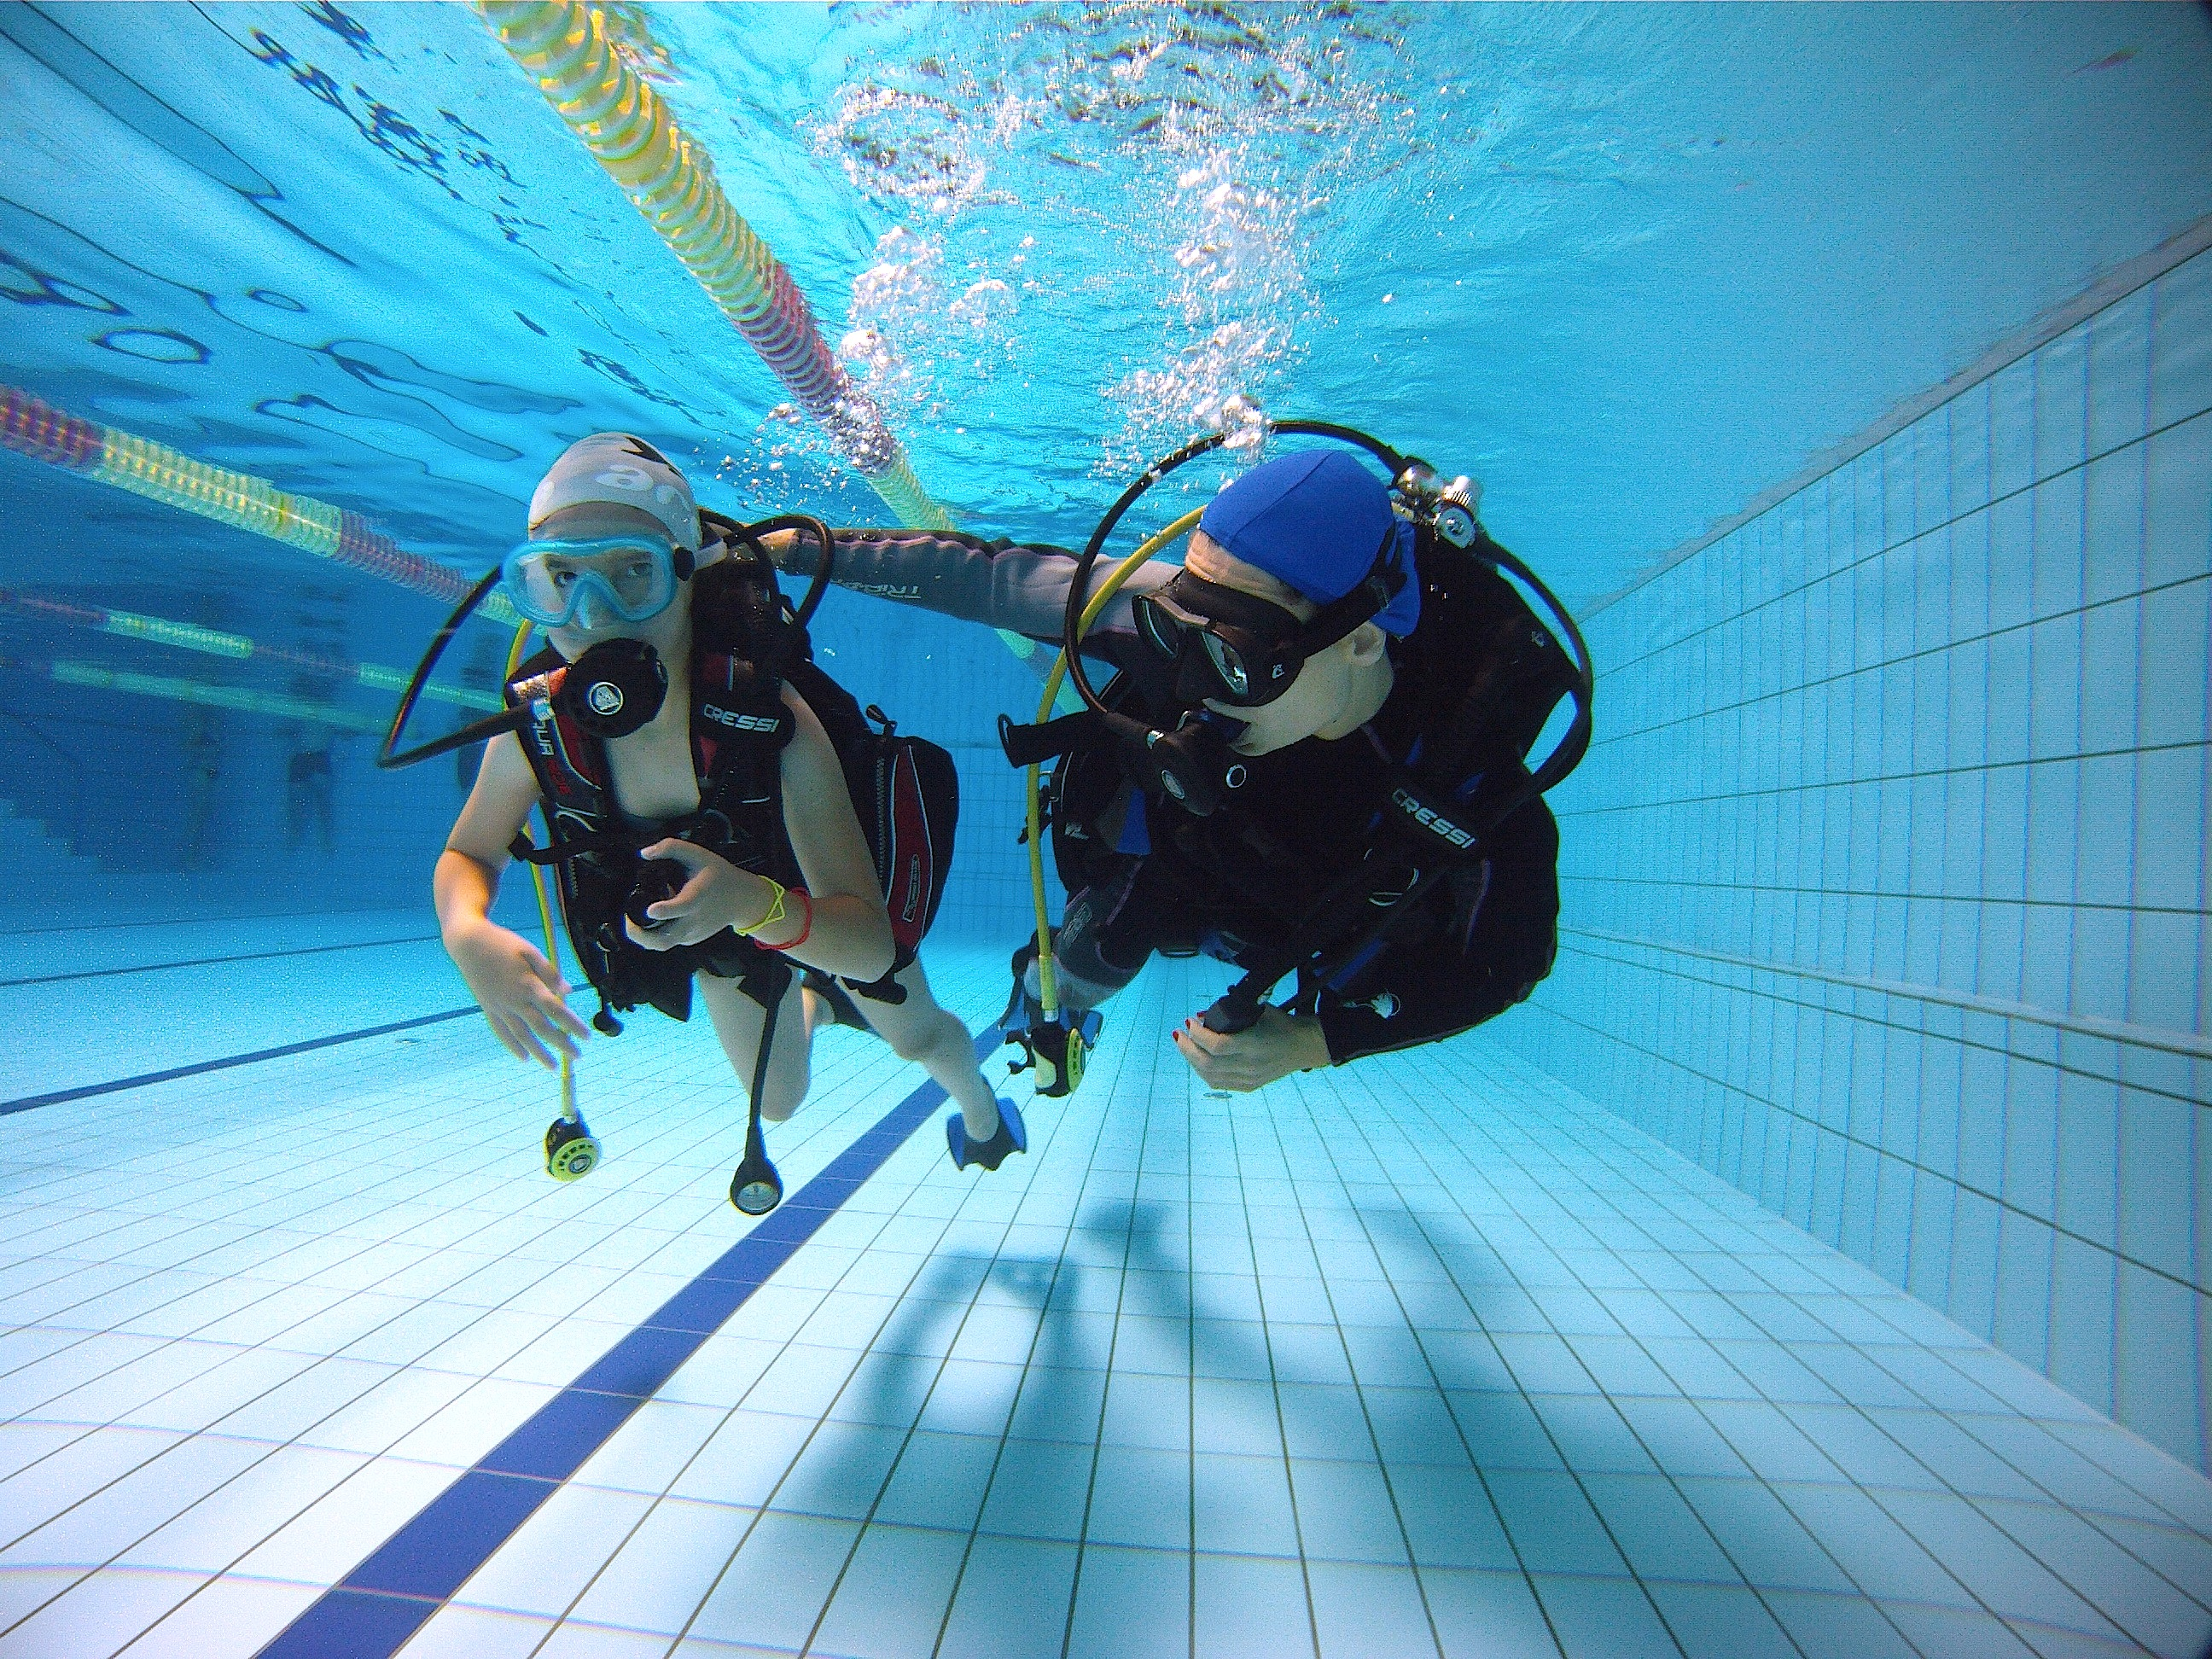 Petra (on the left) during her first dive